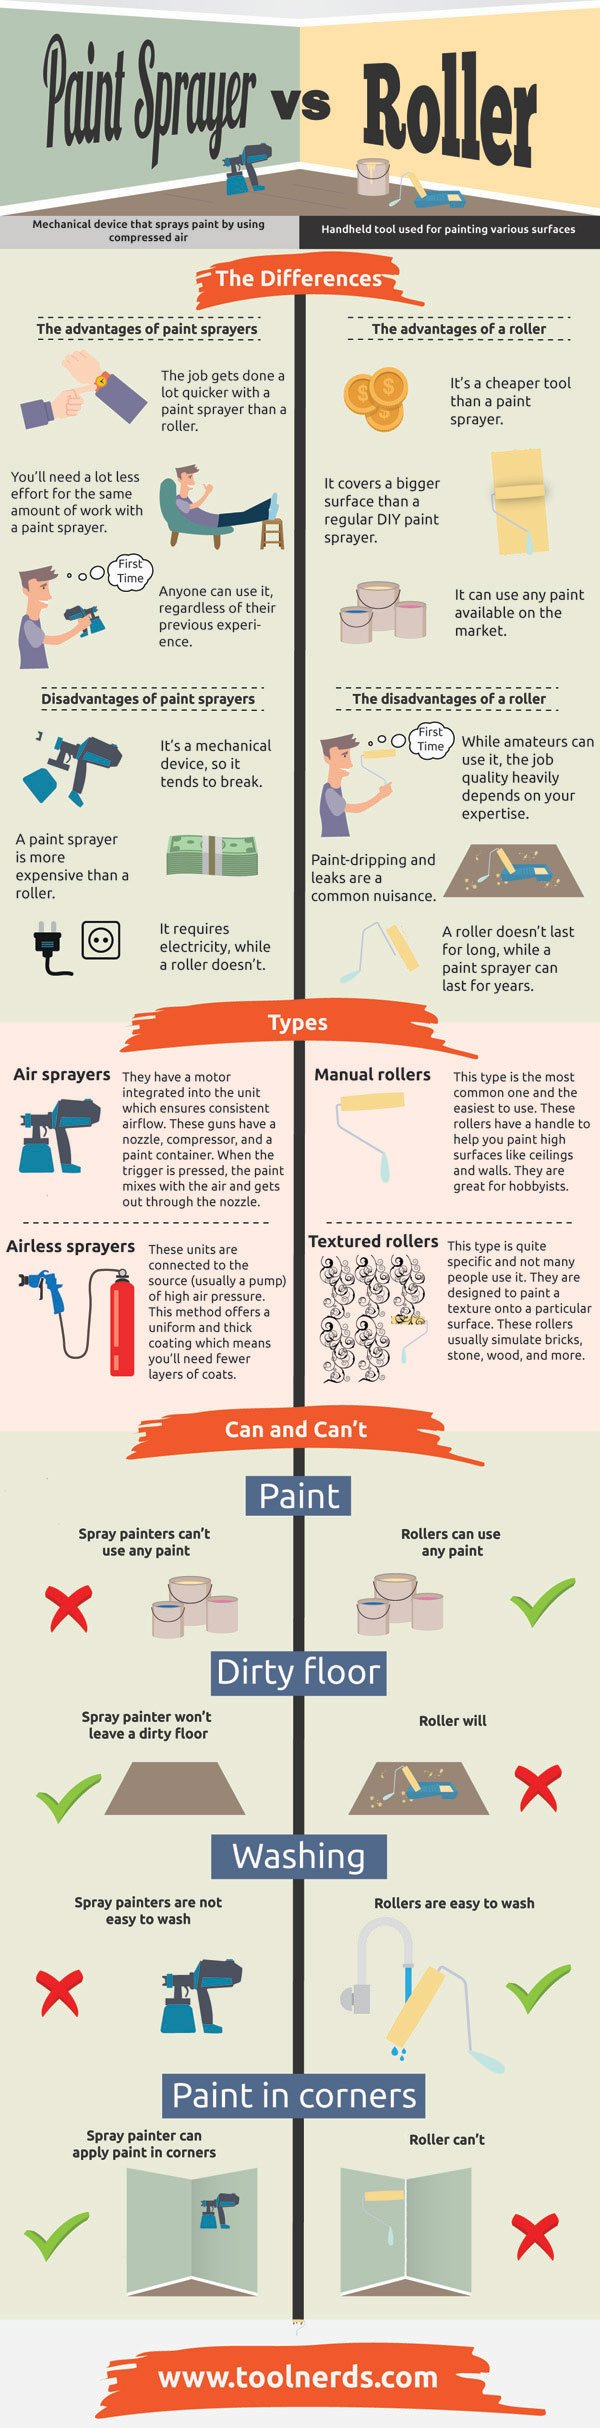 Paint Sprayer vs Roller